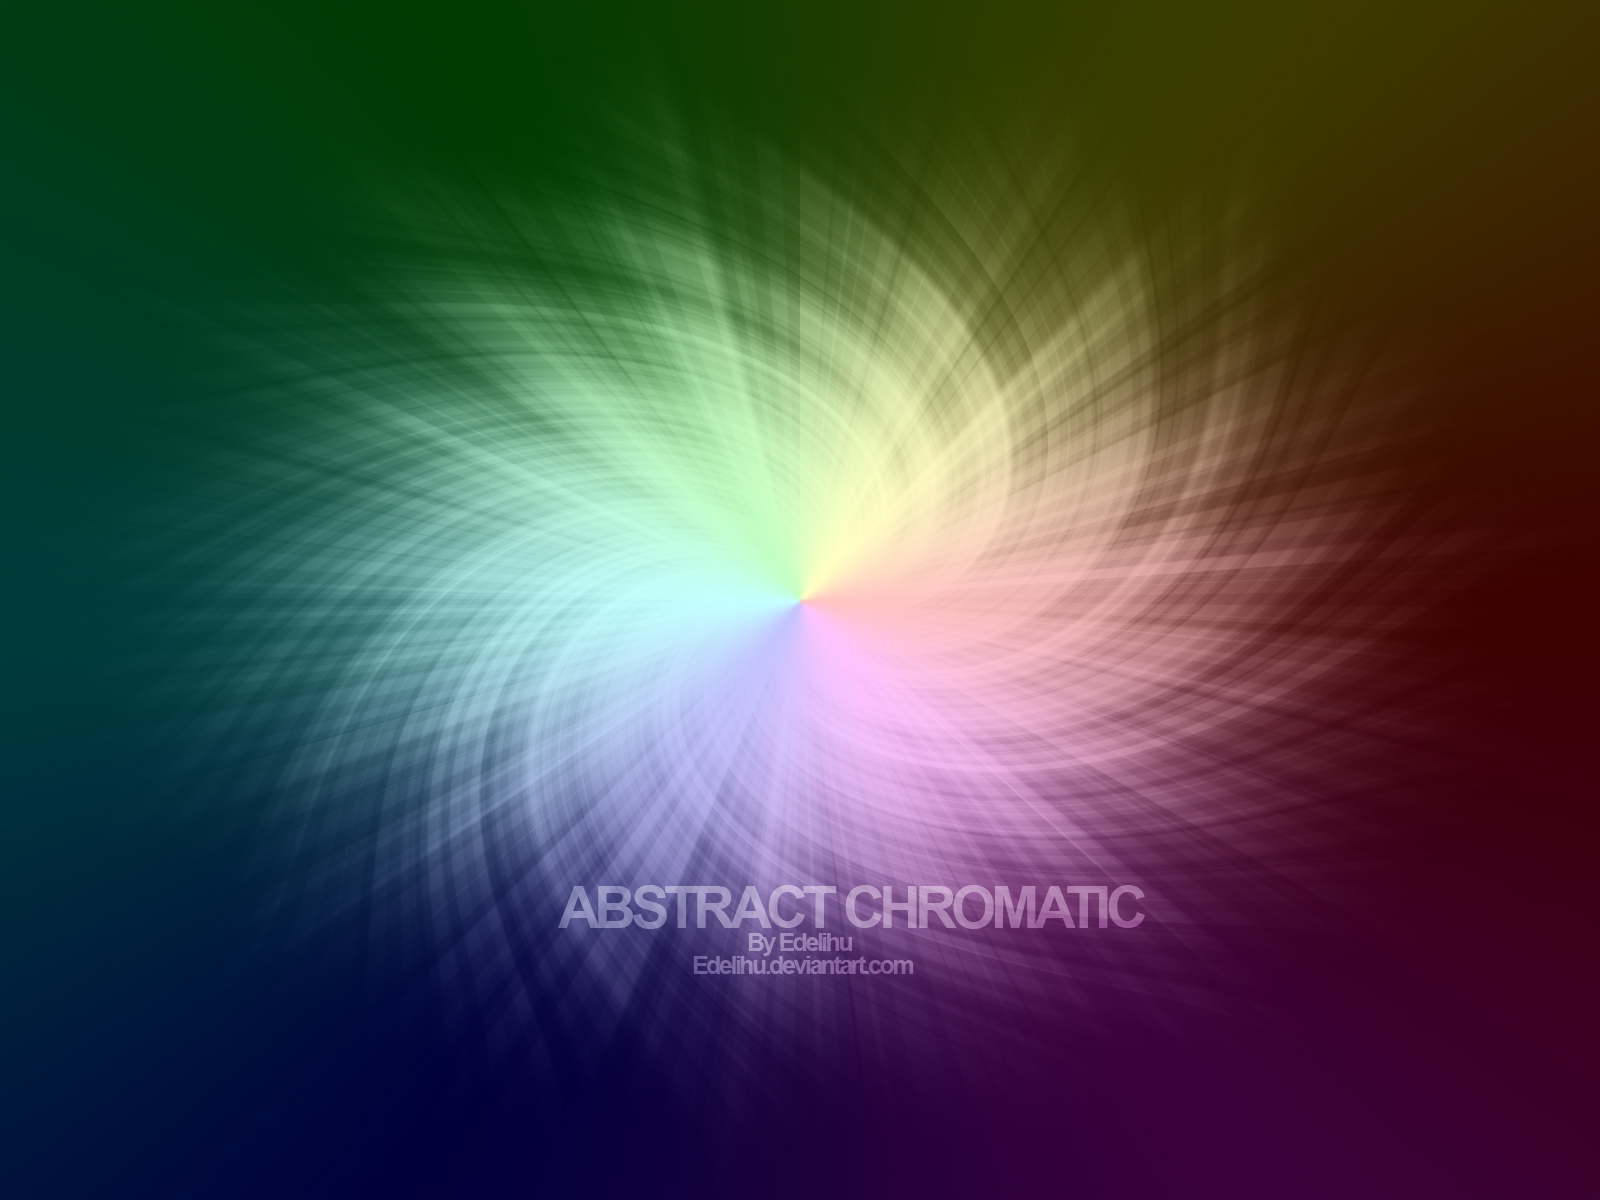 Abstract Chromatic